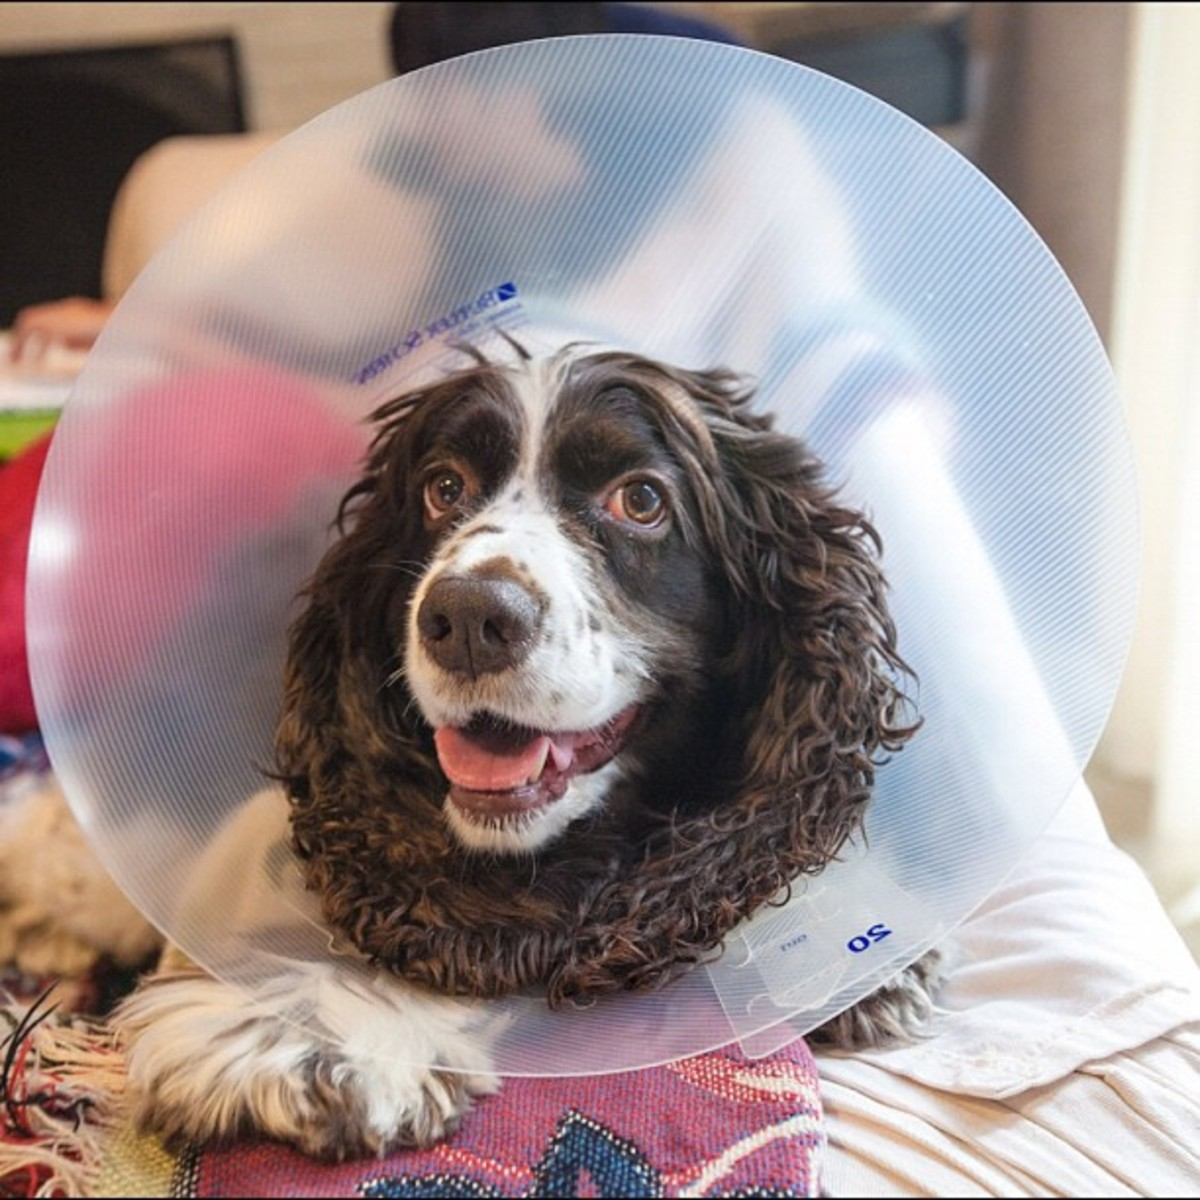 Why is dog shaking after surgery?